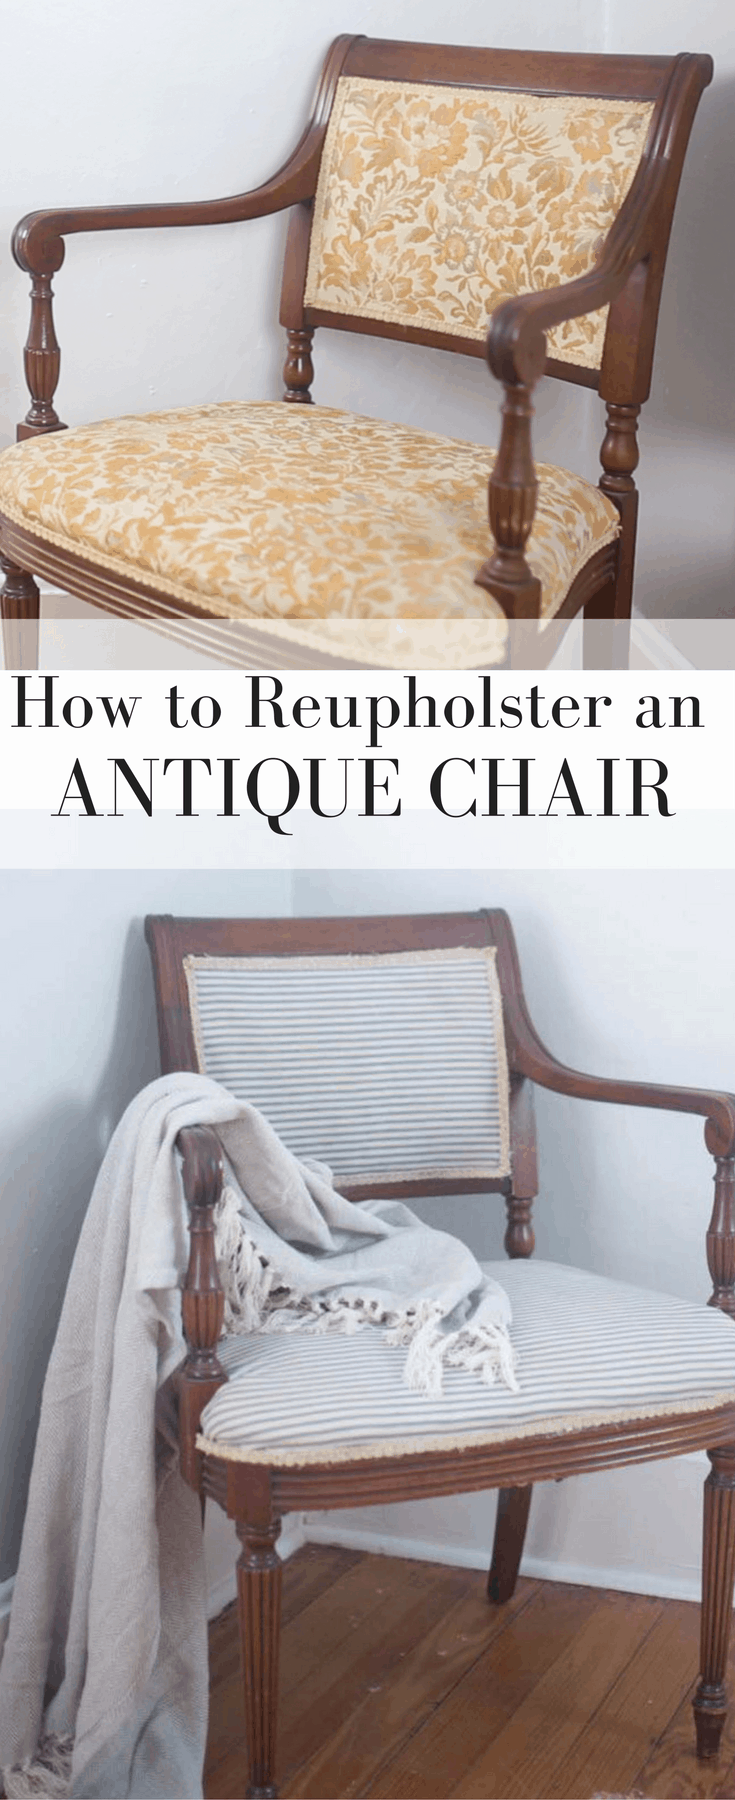 two pictures of an antique chair, before and after reupholstering in blue and white ticking stripe - how to reupholster a chair